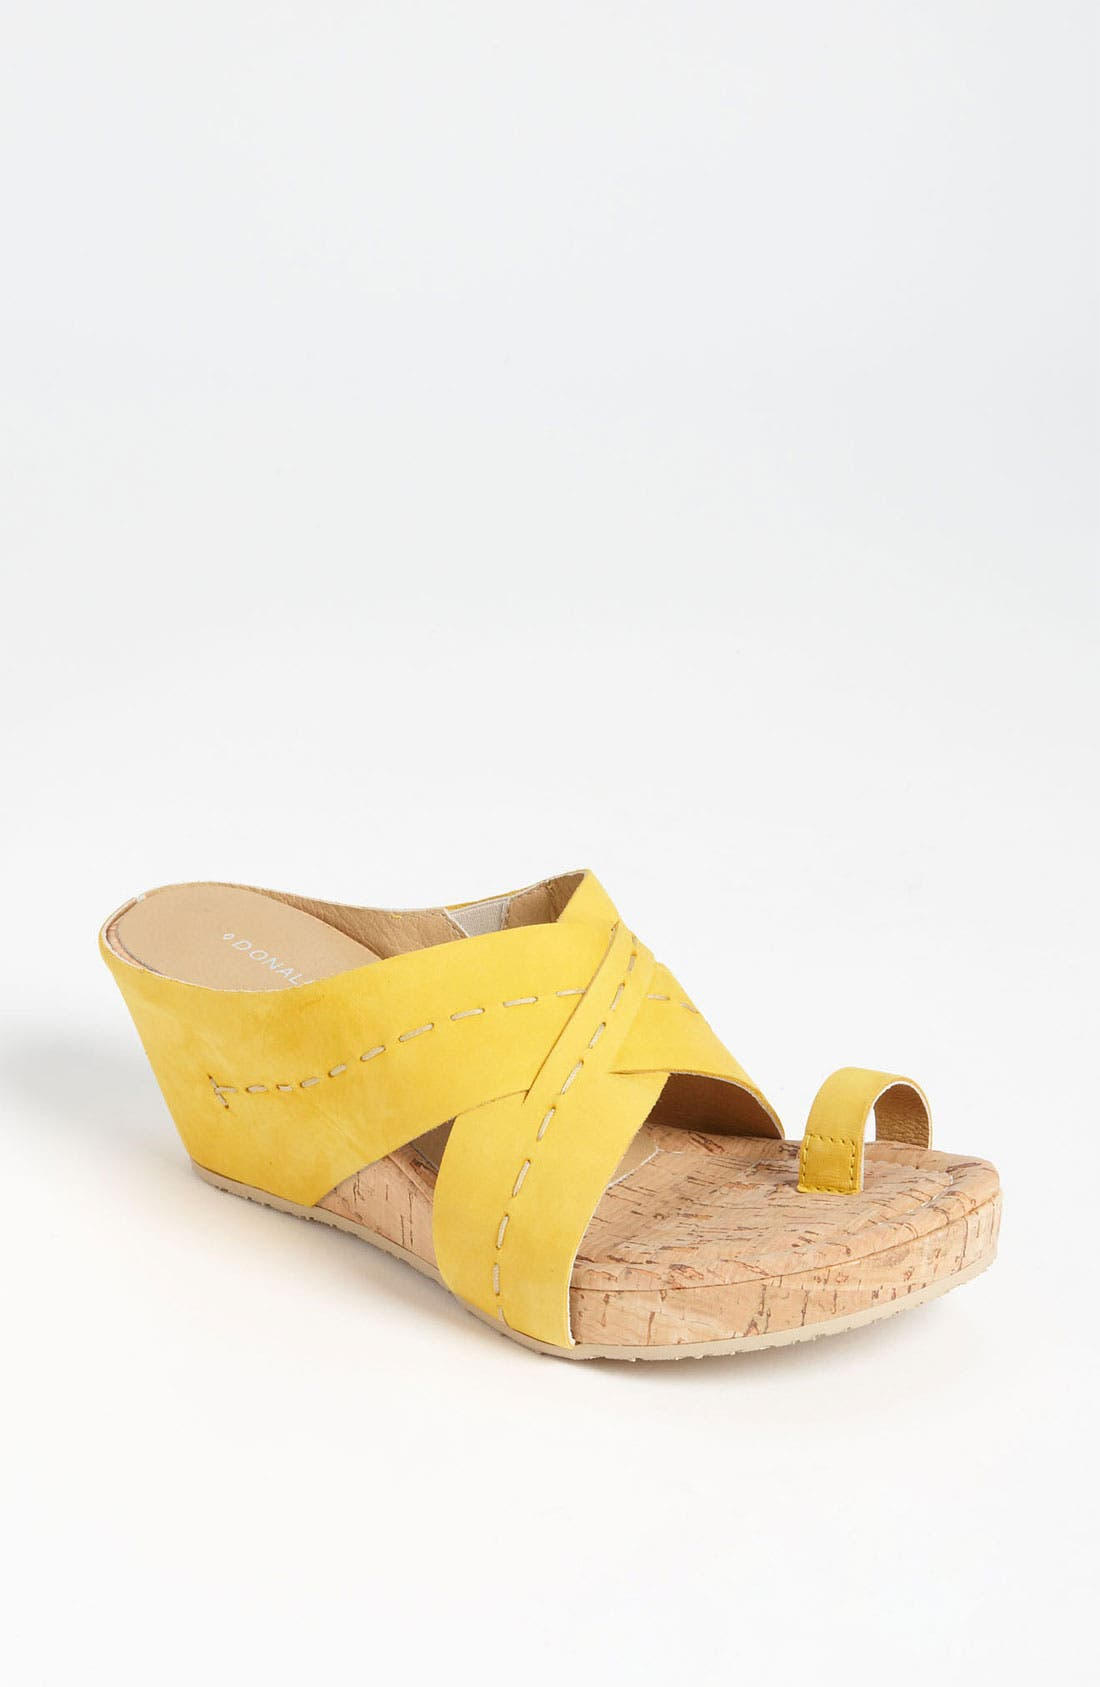 Alternate Image 1 Selected - Donald J Pliner 'Gilana' Sandal